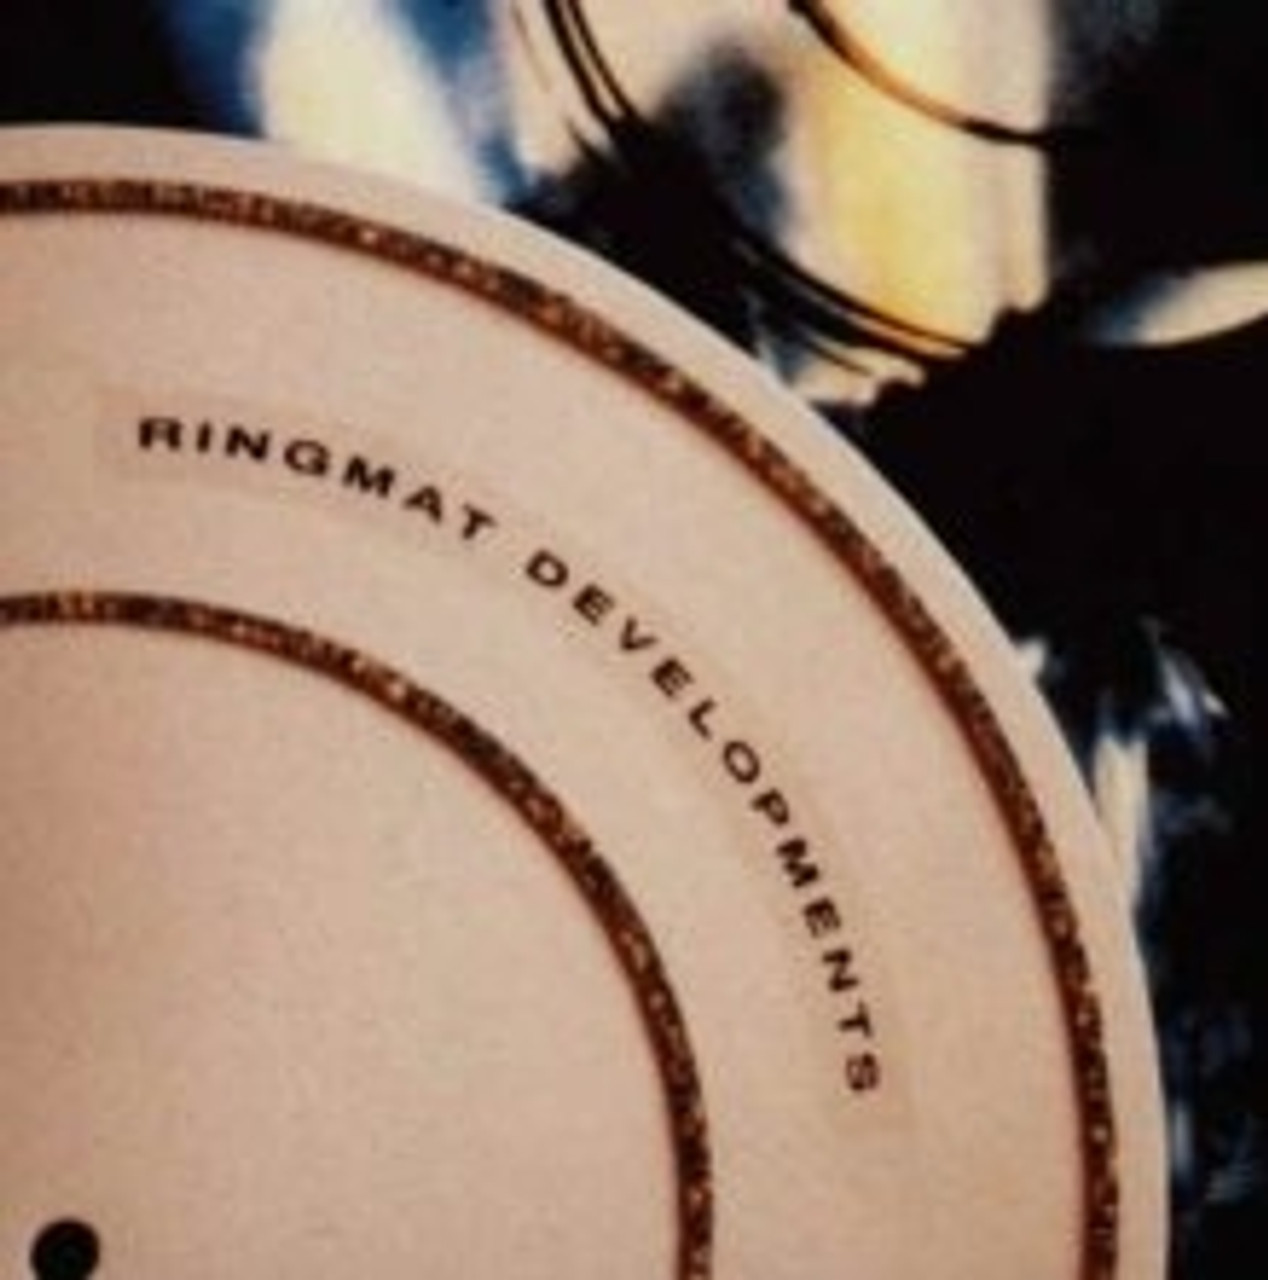 Other Ringmat LP Record Supoort System Components